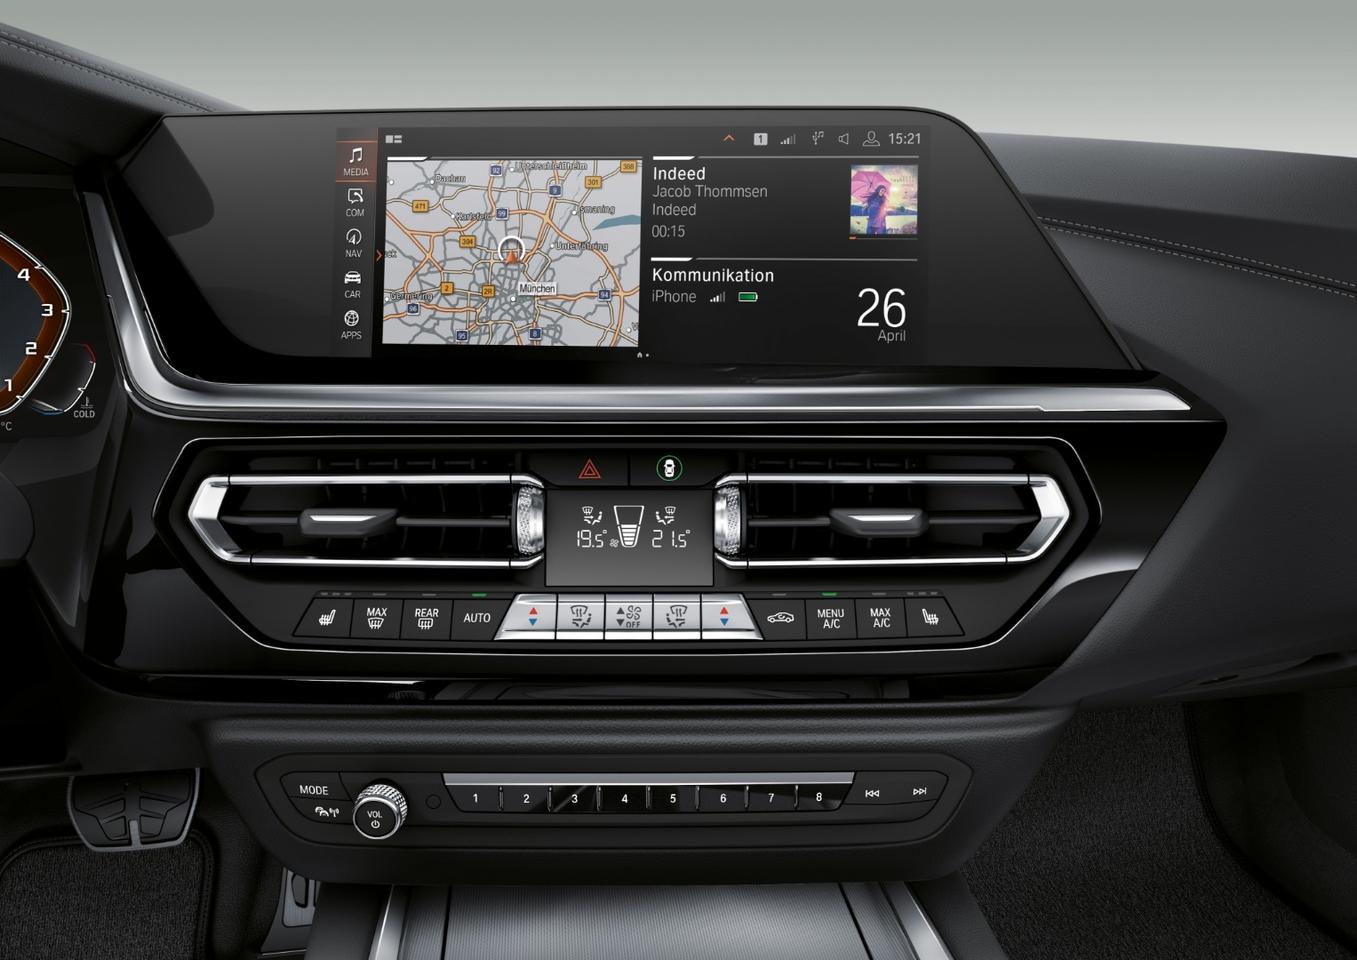 Photos show the large screen integrated into the Z4's dash for infotainment and in-car connectivity